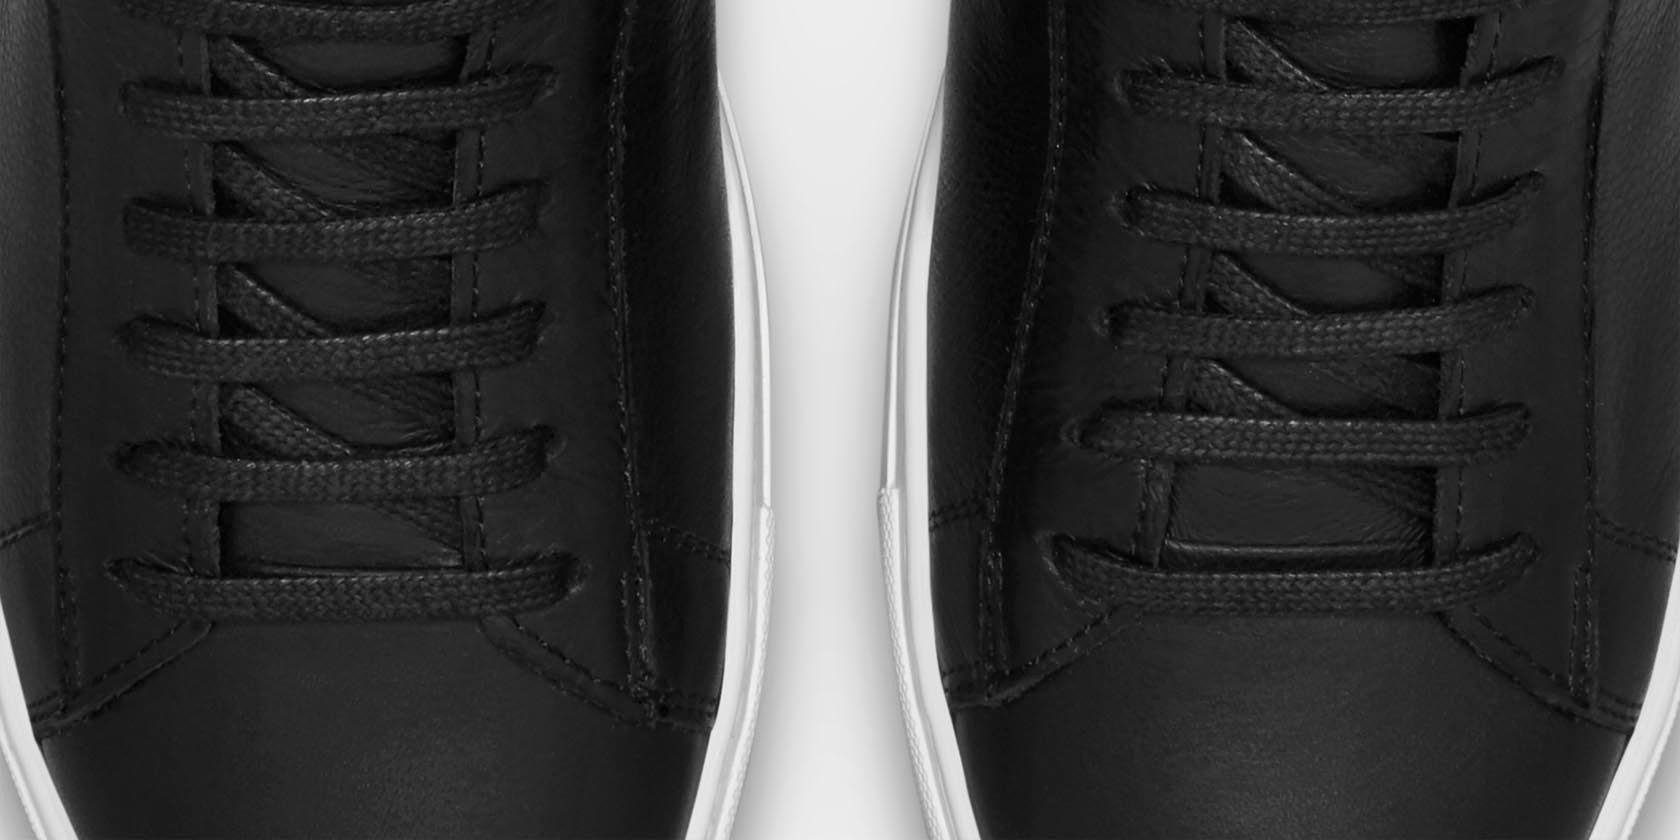 Design Details for Low 1 | Black